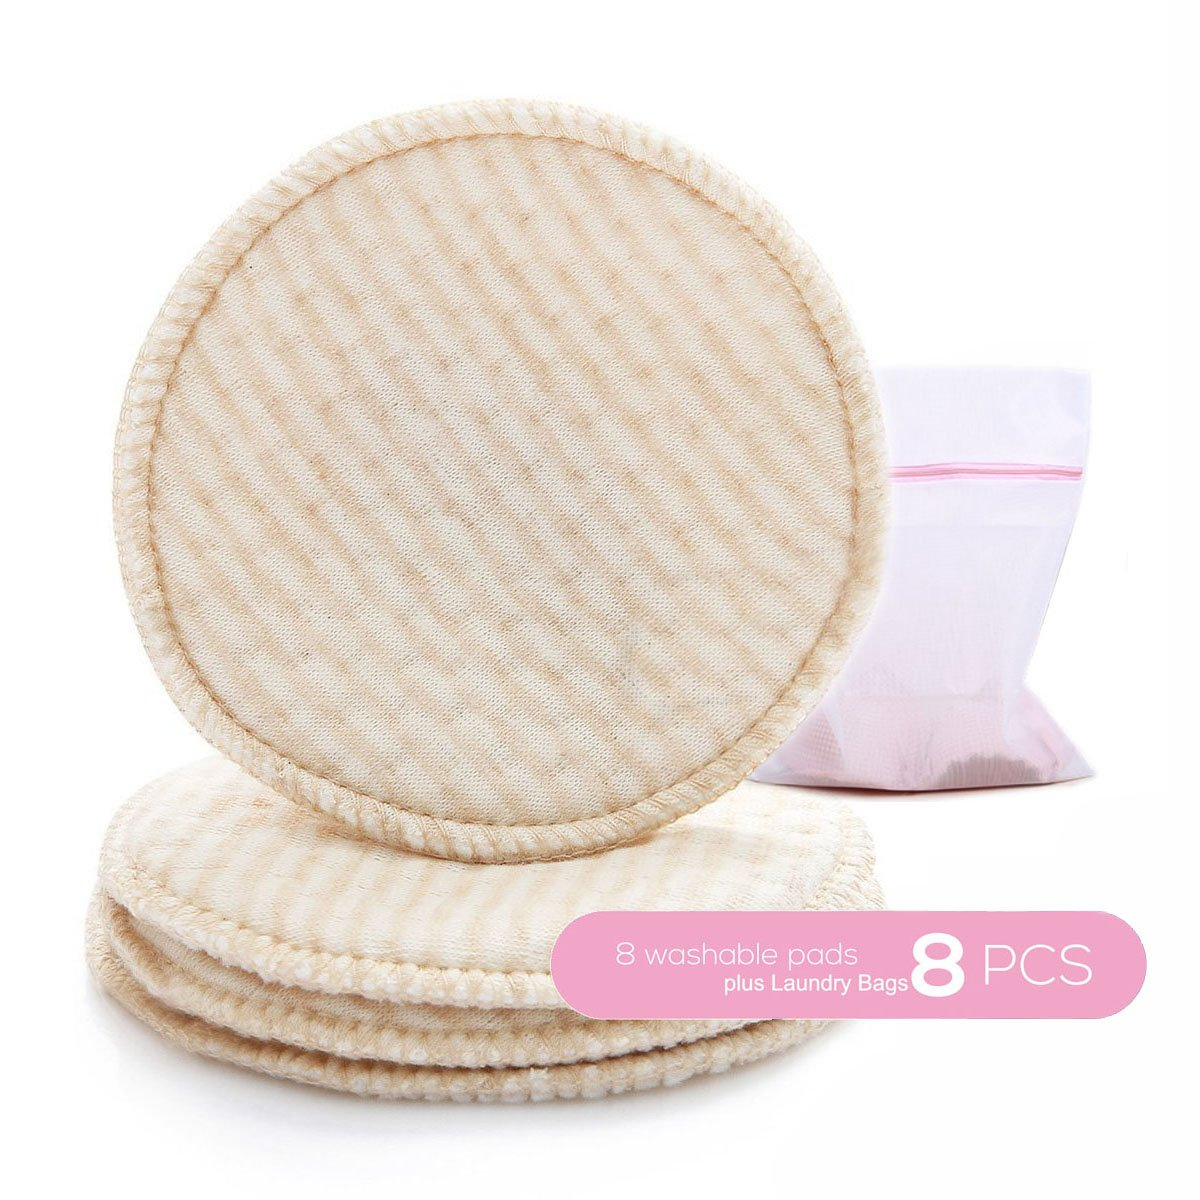 Organic Nursing Pads, Cotton Super Soft & Absorbent, with Laundry Bags (8 Pack)